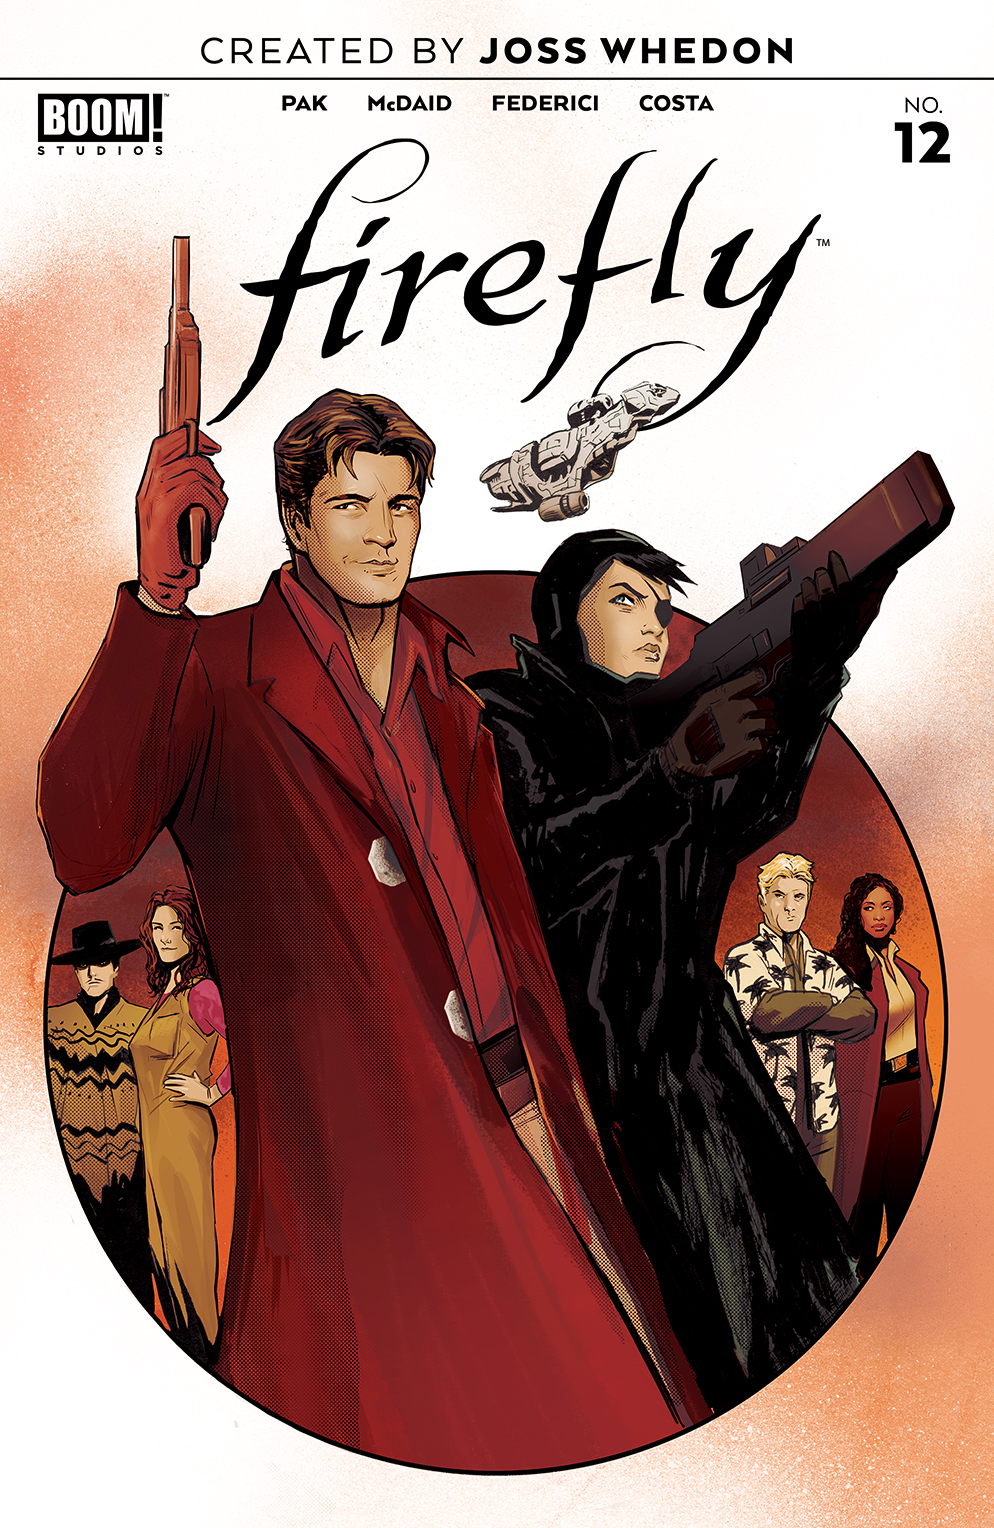 Firefly #12 (BOOM! Studios) - Preview